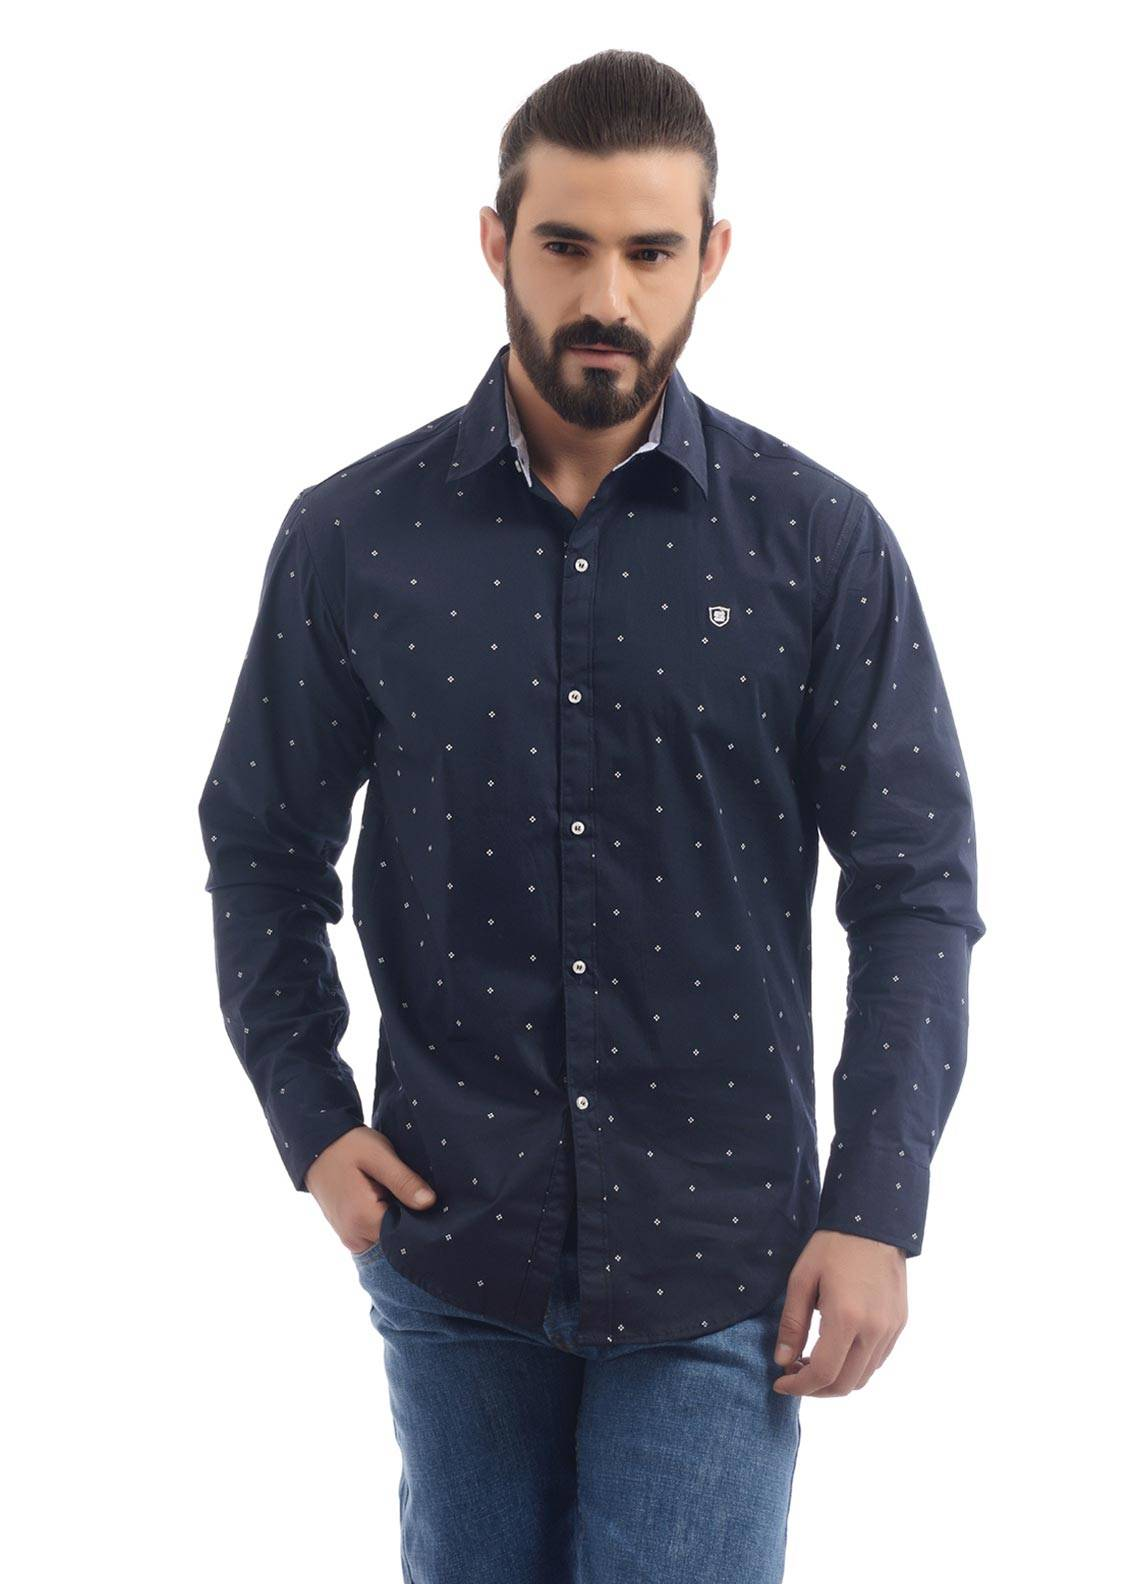 Shahzeb Saeed Cotton Casual Shirts for Men - Navy Blue CSW-96